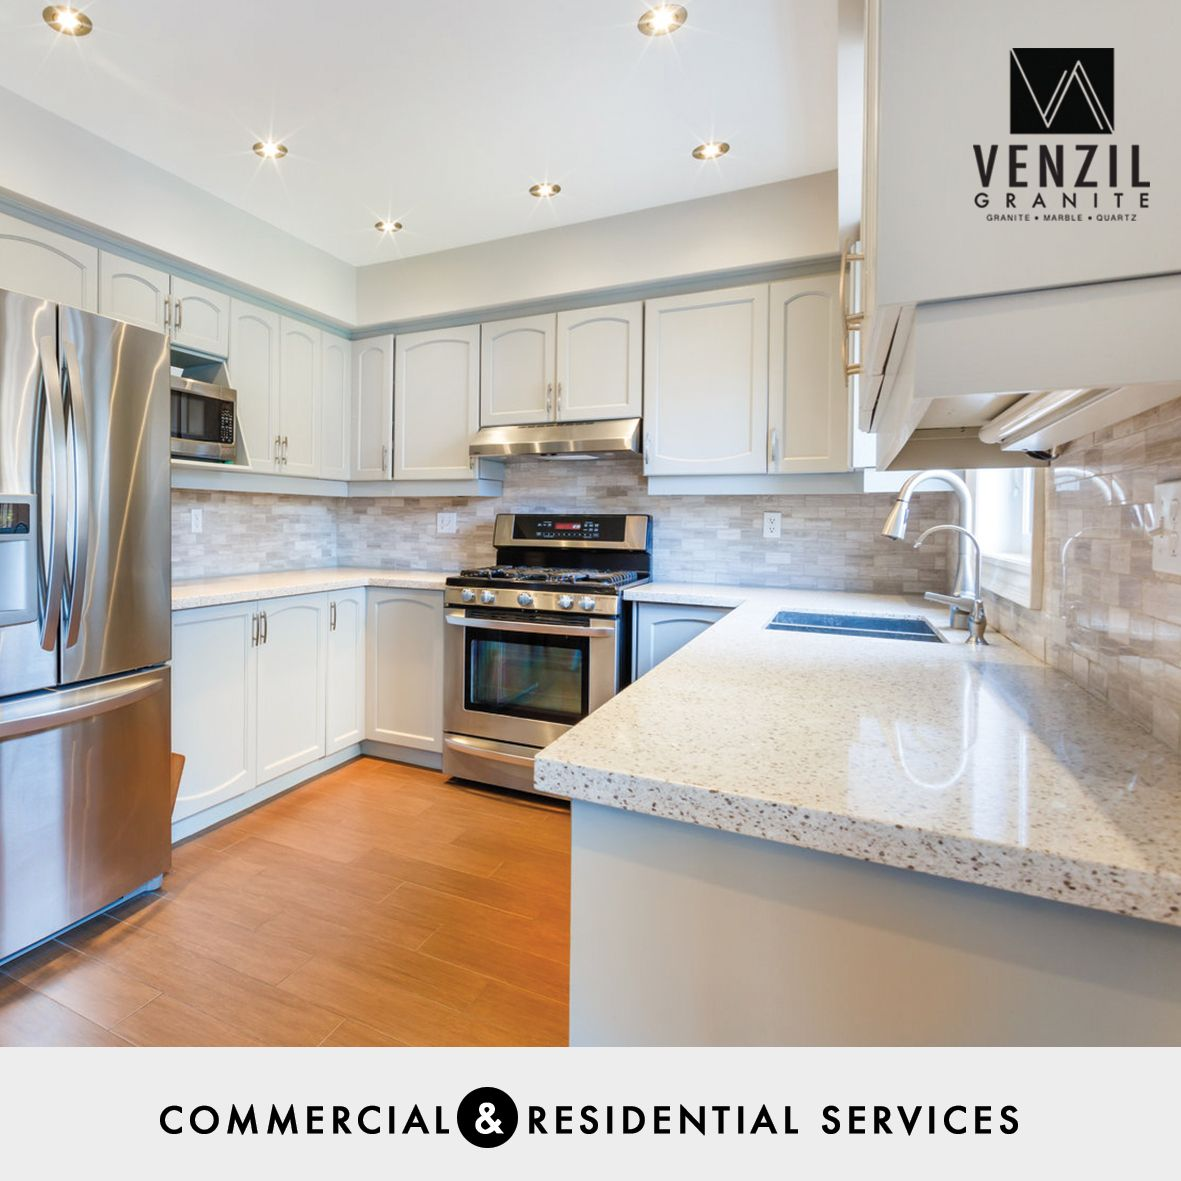 We take care of fabrication and installation of kitchen